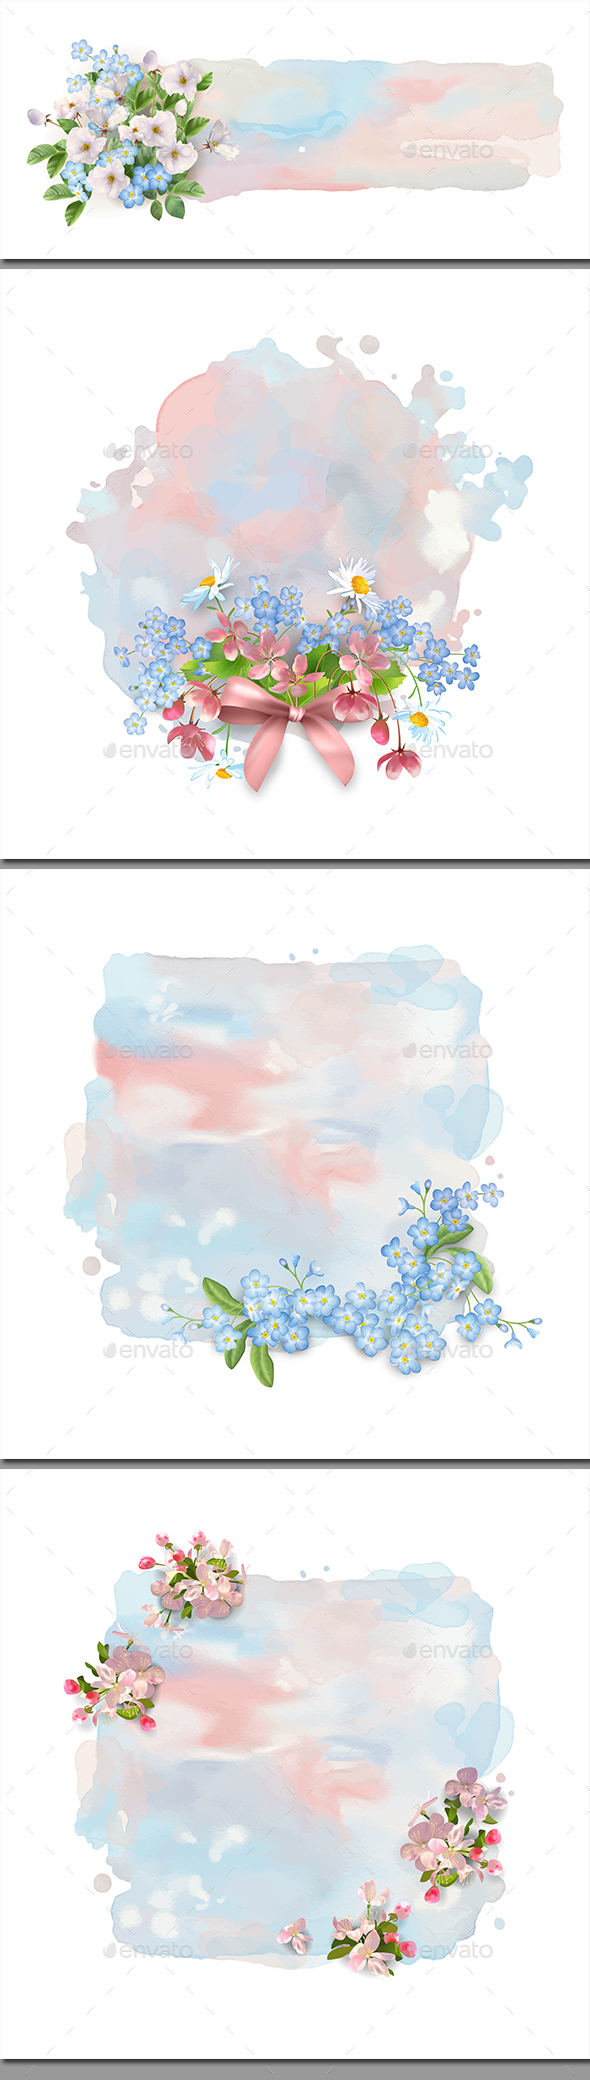 Watercolor Banner with Flowers - Backgrounds Decorative